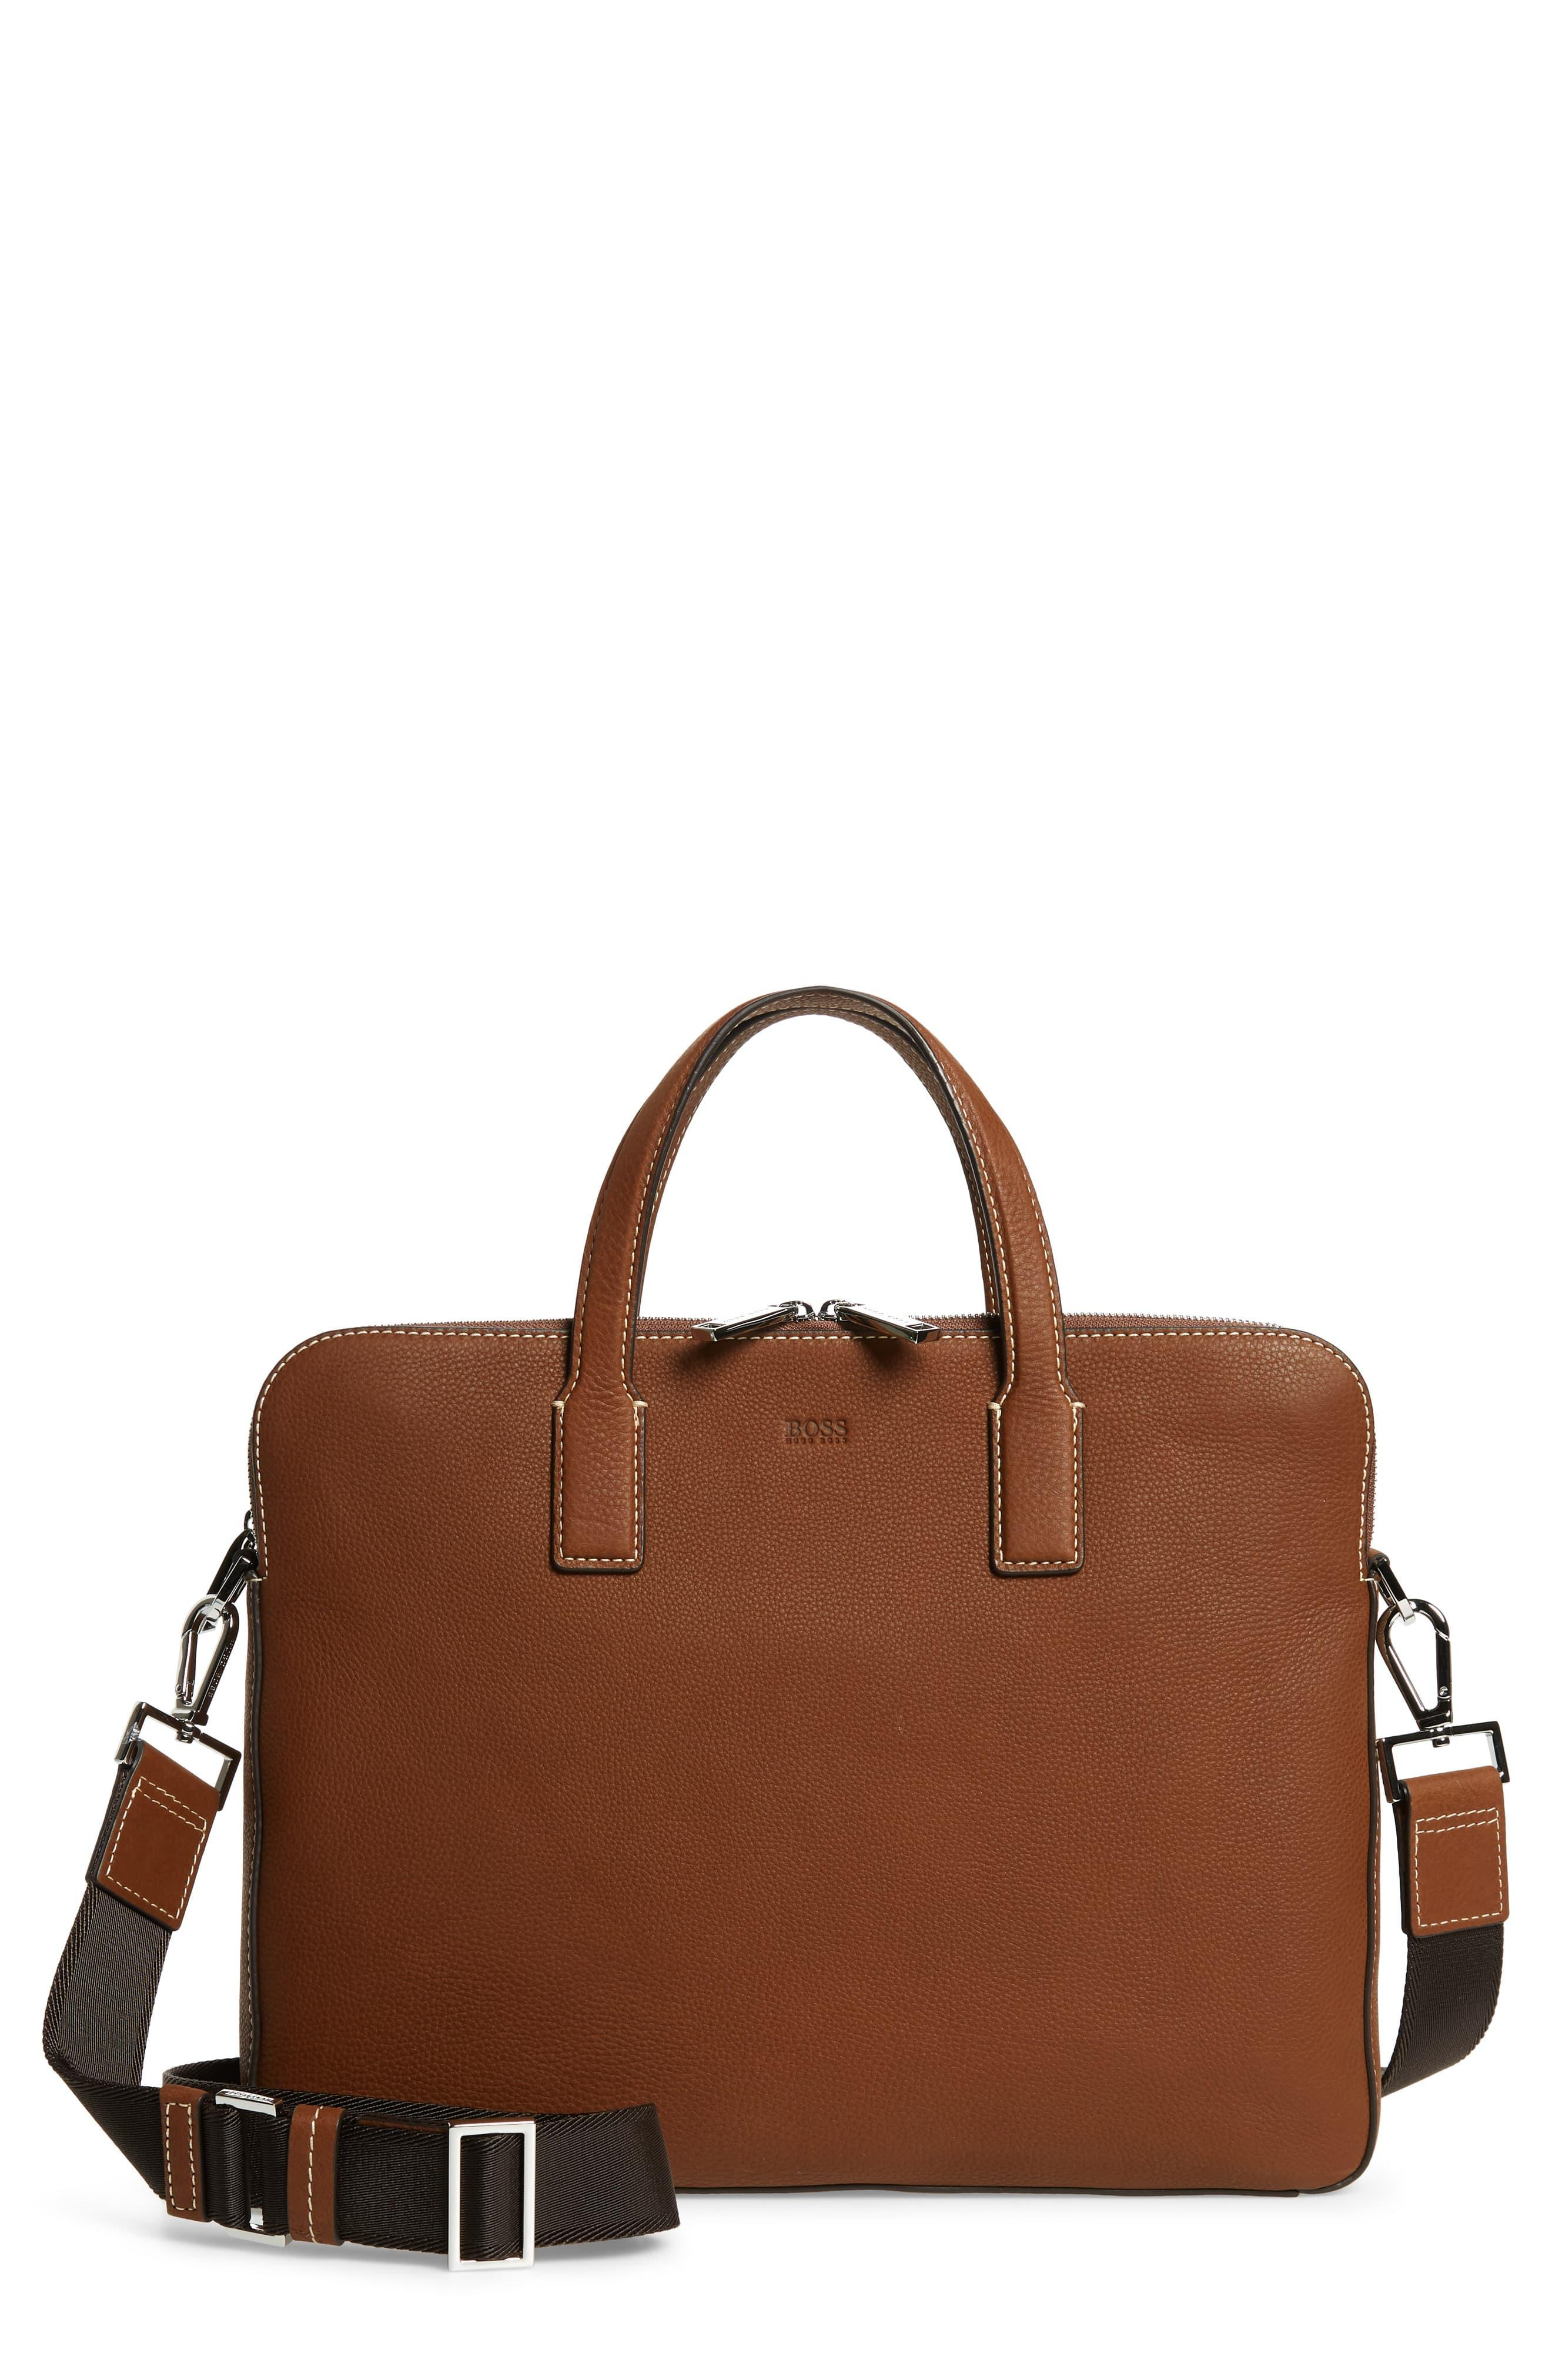 e0ec04bbd0 Brown Zipped Document Case In Italian Leather With Contrast Stitching